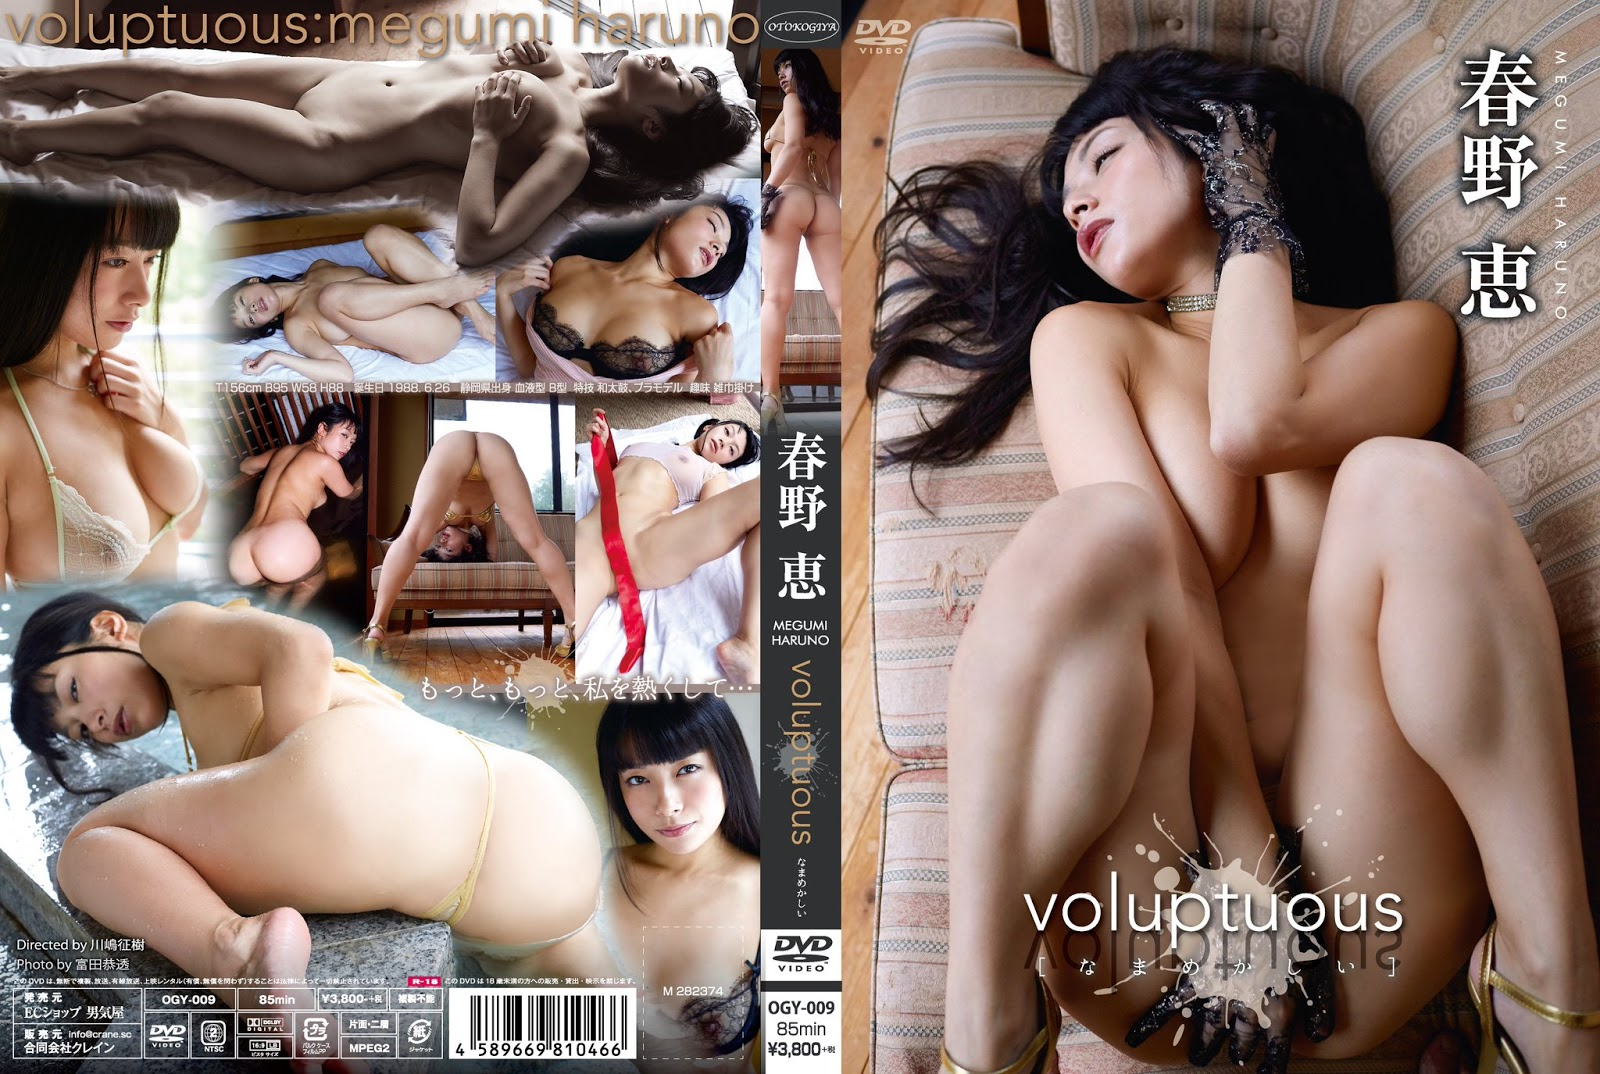 IDOL OGY-009 Megumi Haruno 春野恵 – voluptuous [MP4/1.30GB], Gravure idol